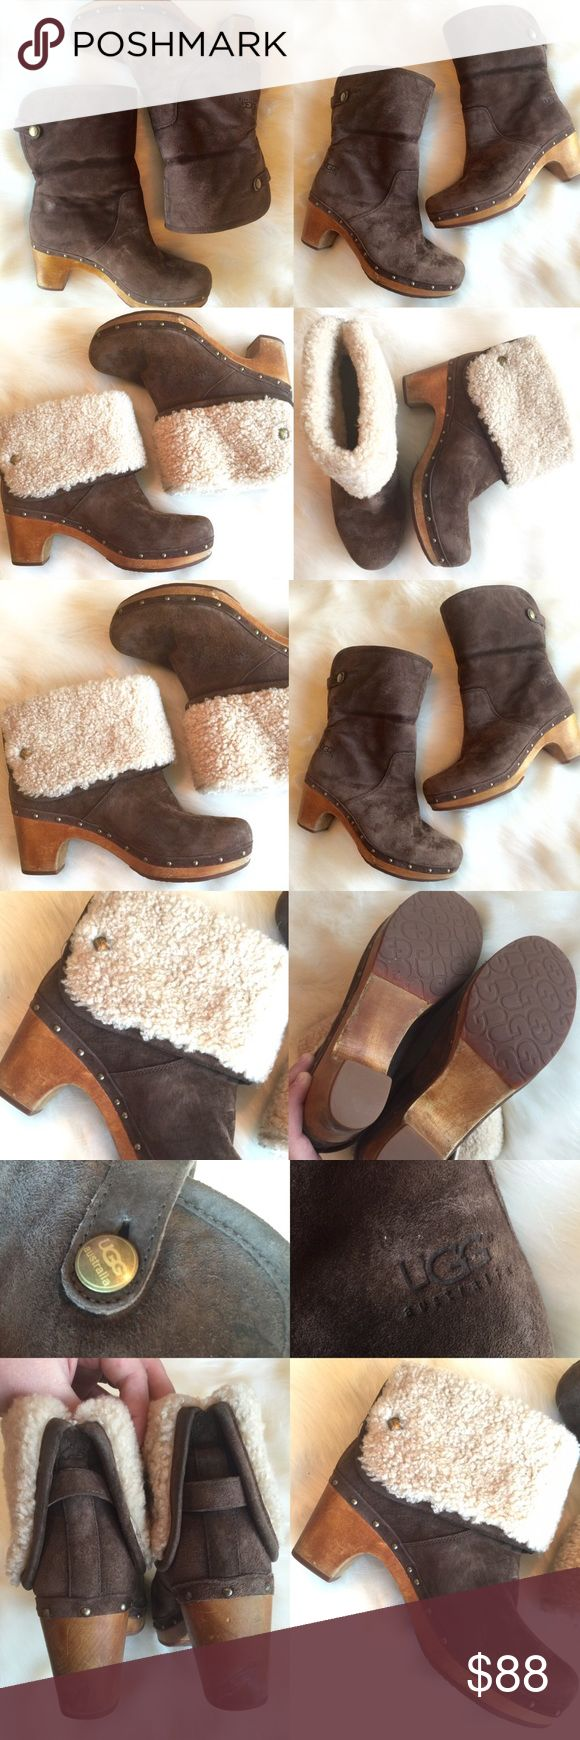 UGG Boots Leather Clog Boots, Studded Lynnea, 8 Great pre-loved condition! Some marks on the wood base from wear. Wear these UGG BOOTS two ways, as pictured! Size 8. UGG Shoes